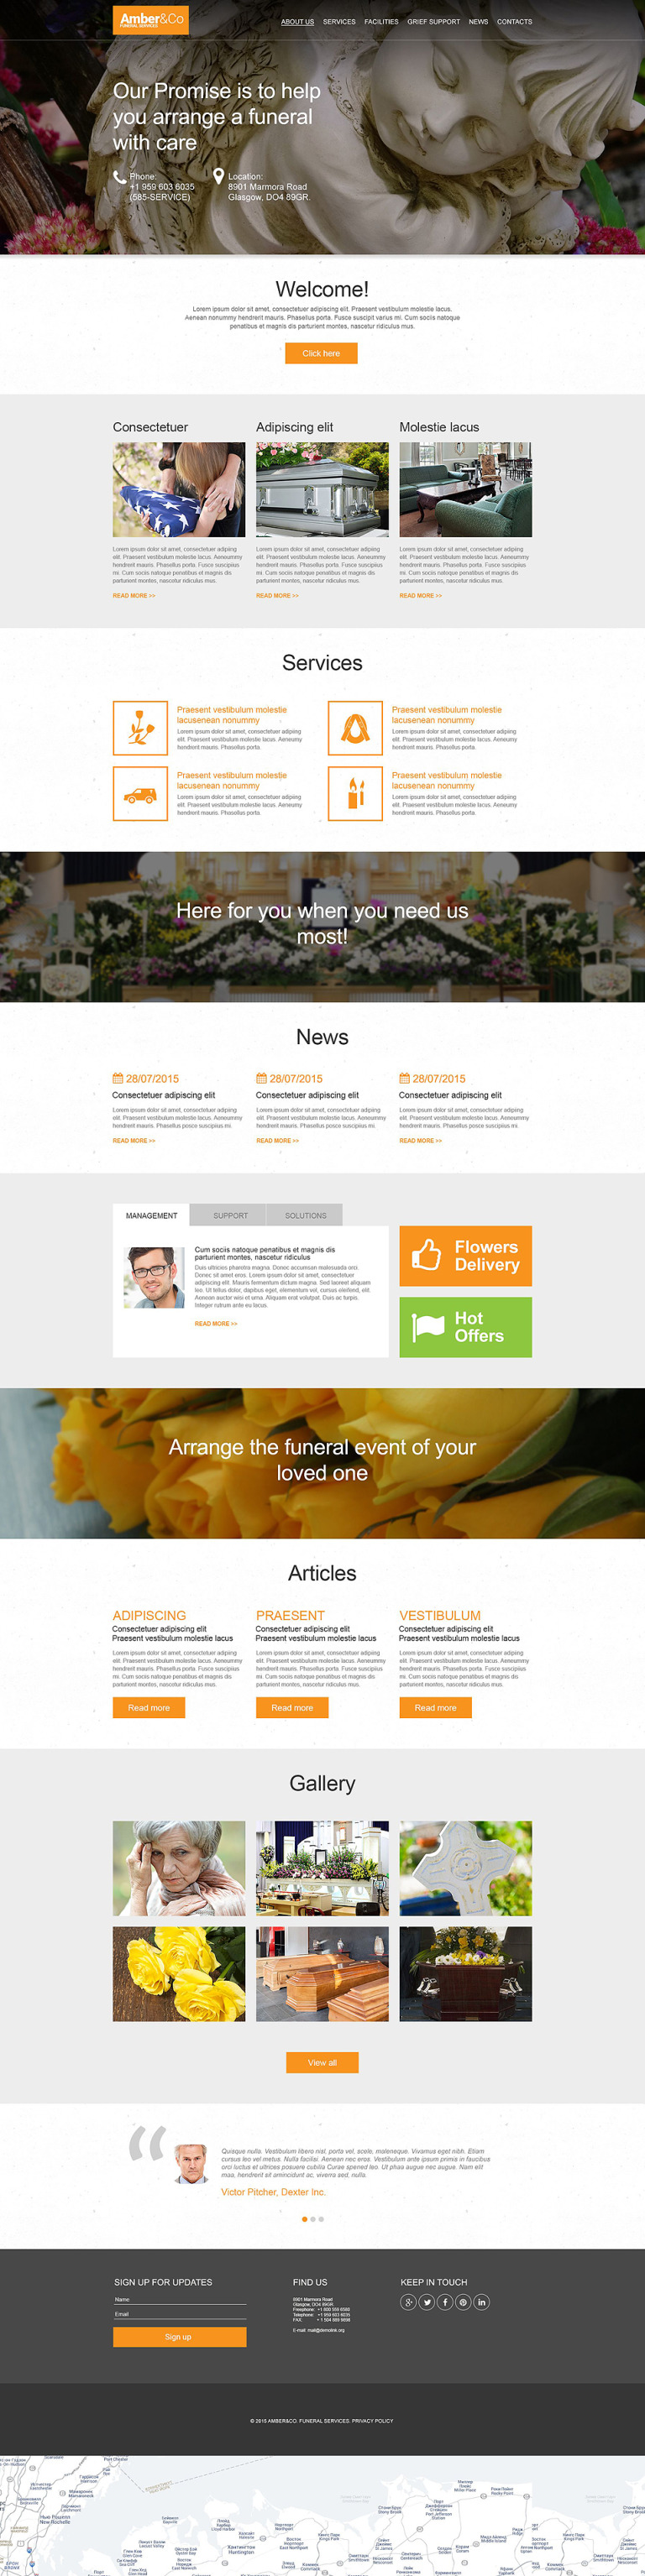 Funeral Services Muse Template New Screenshots BIG